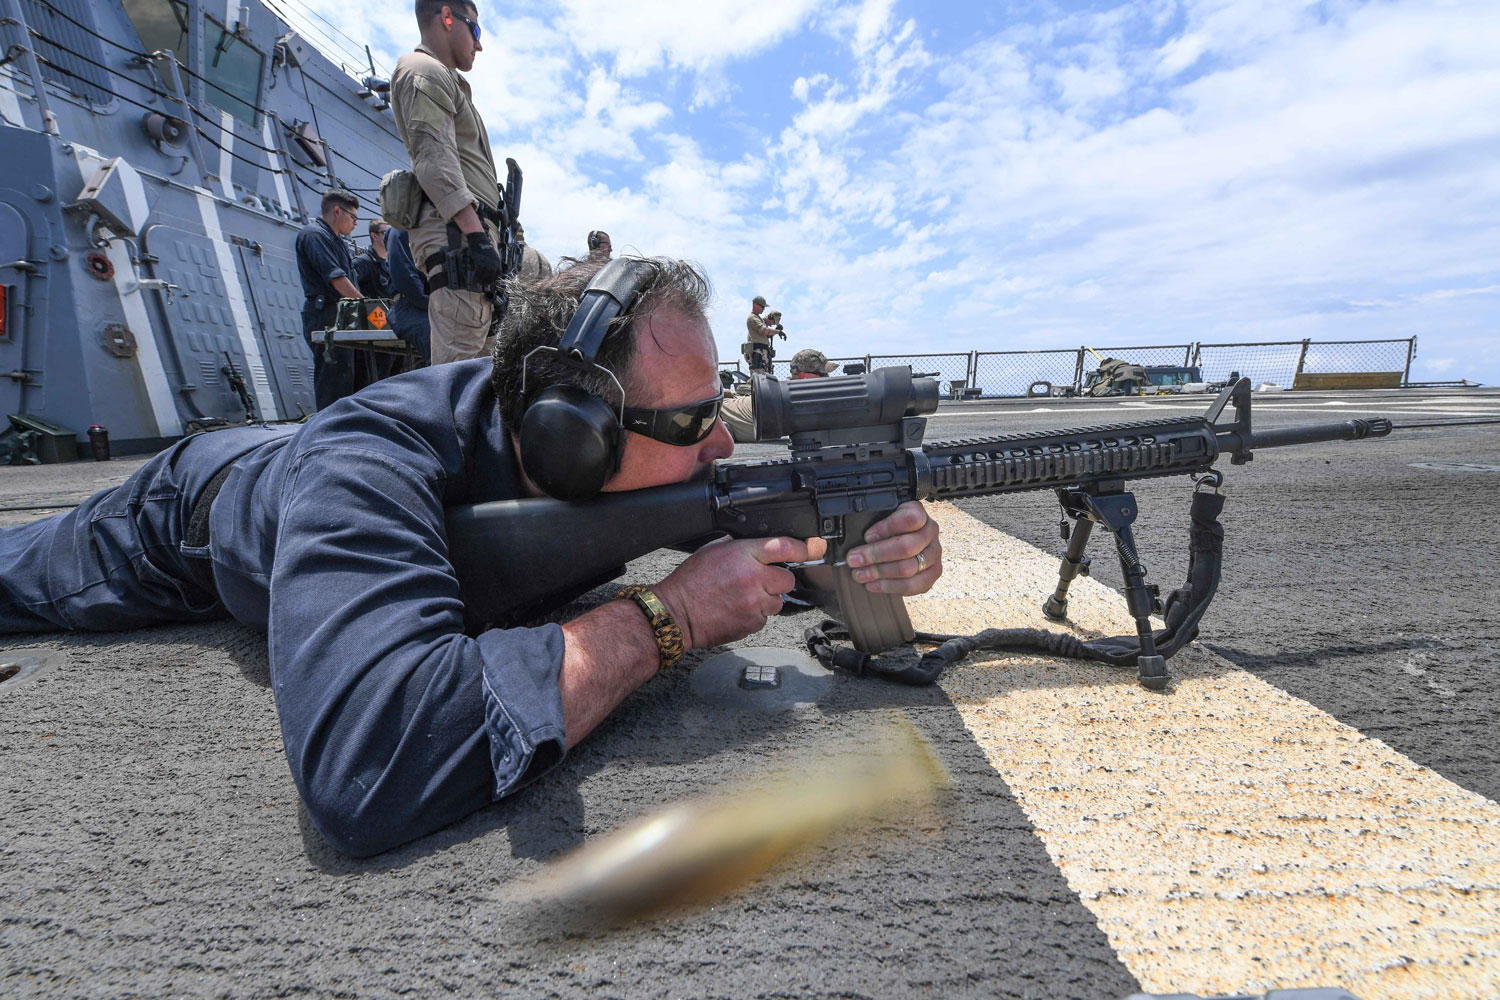 Gunner's Mate 1st Class Christopher Paul fires an M4A1 carbine on the flight deck of the Arleigh Burke-class guided-missile destroyer USS James E. Williams. James E. Williams, home-ported in Norfolk, Virginia, is on a routine deployment to the U.S. 6th Fleet area of operations in support of U.S. national security interests in Europe.